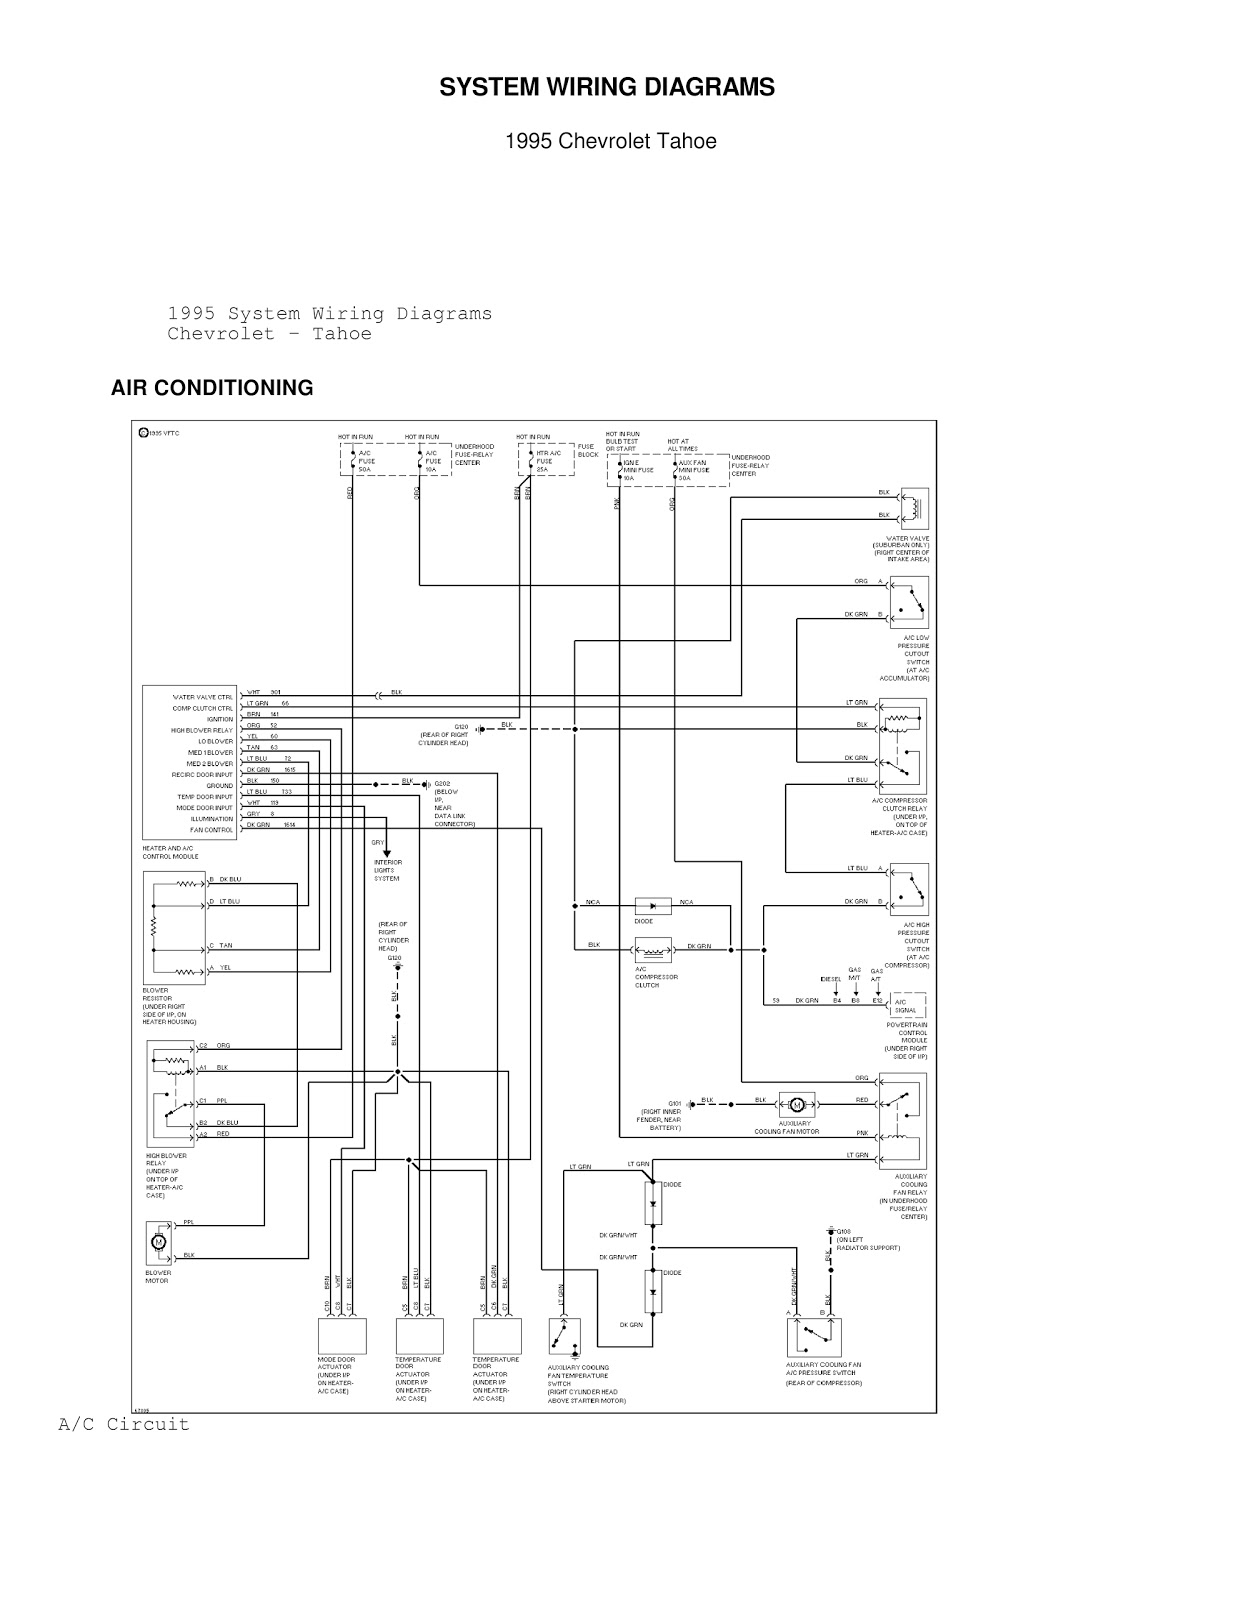 Chevrolet Tahoe System Wiring Diagrams Air